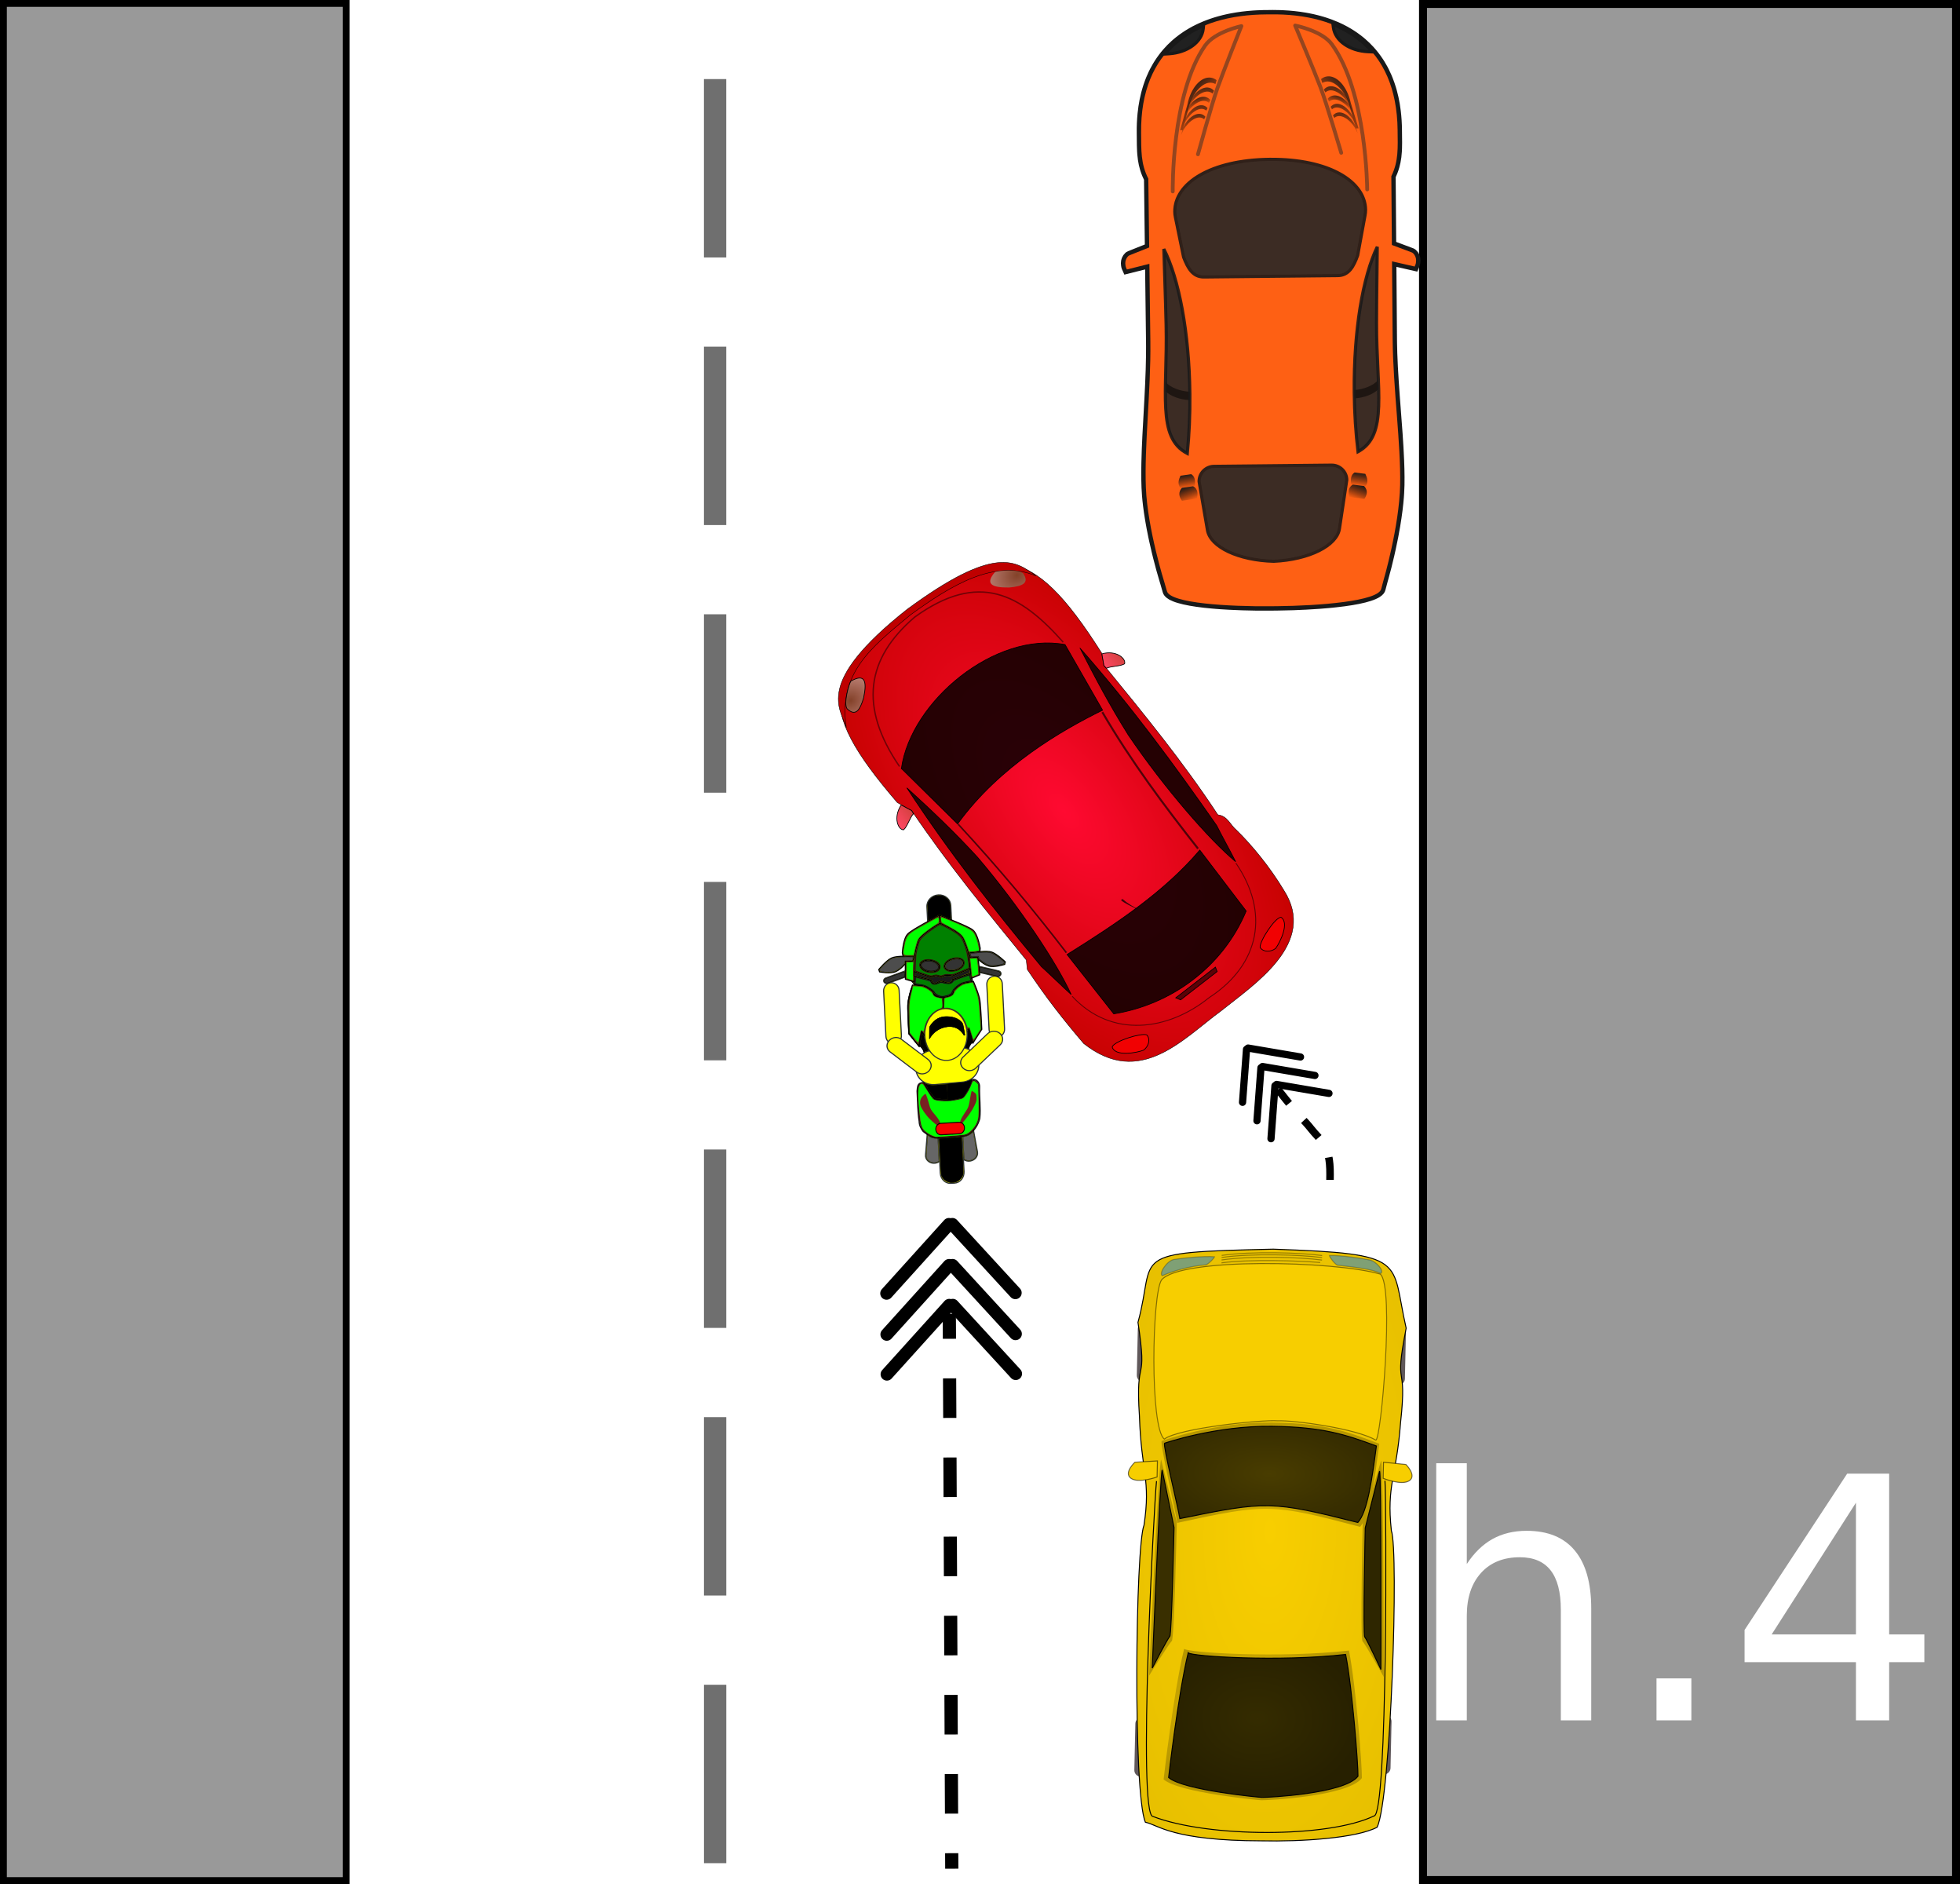 traffic accident pictograms h.4 by Gusta